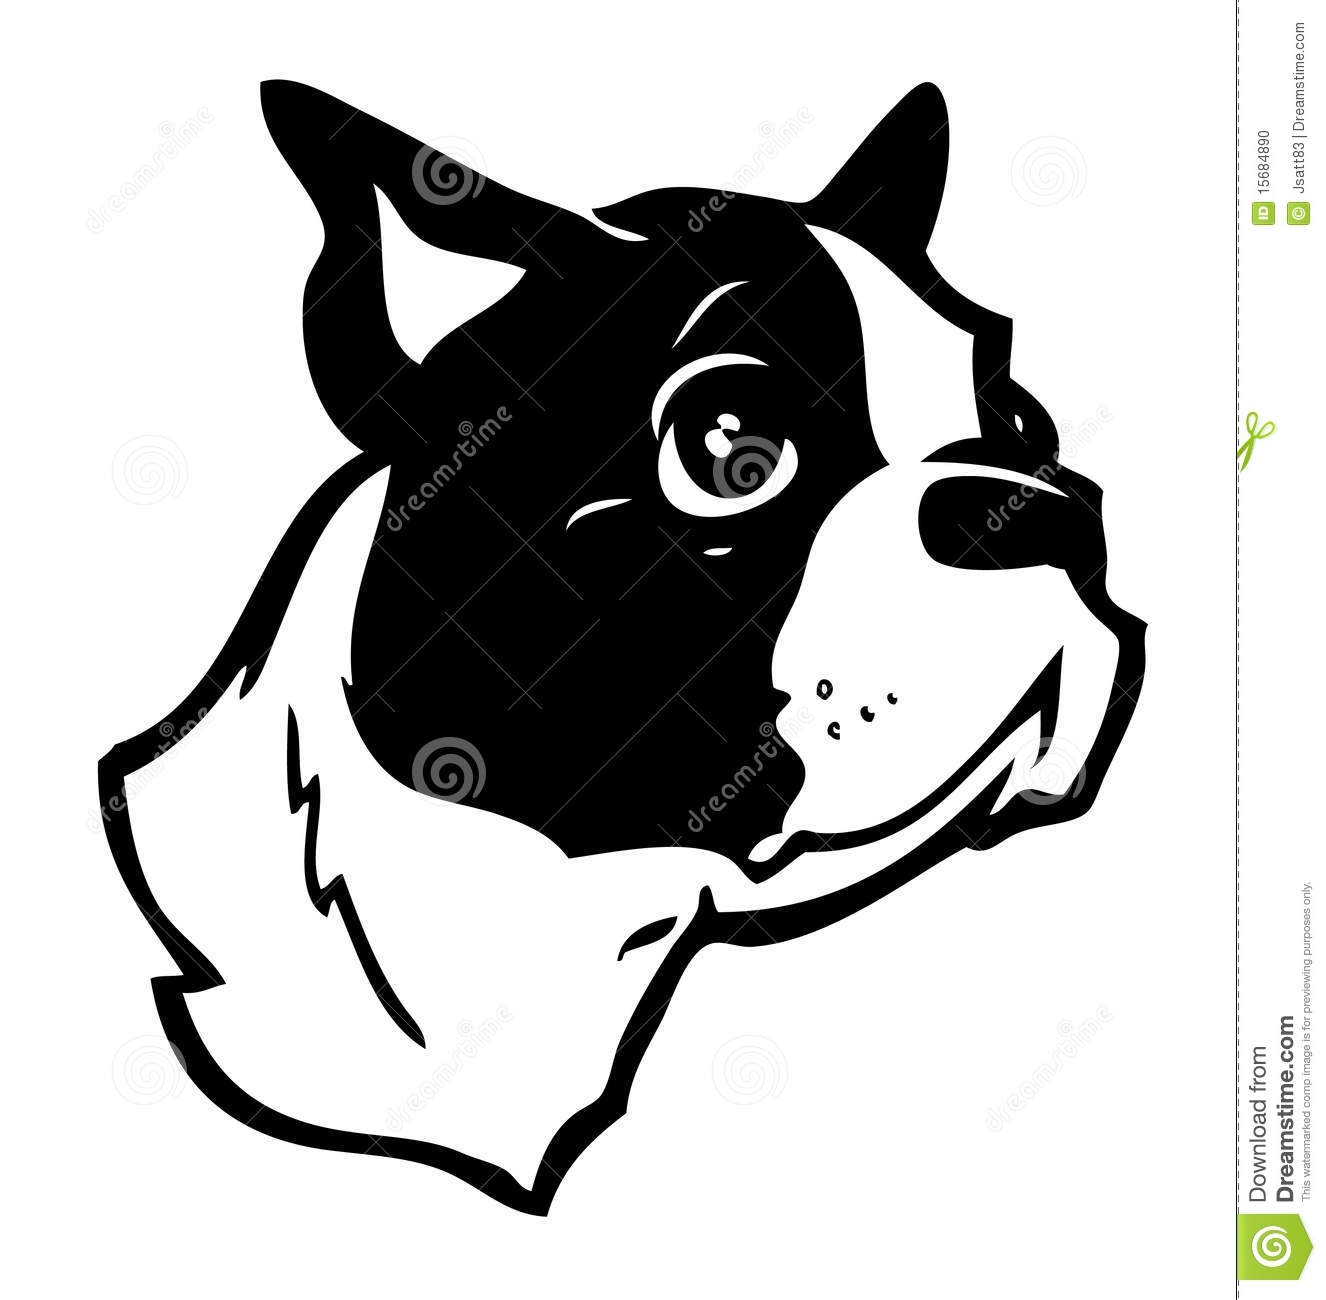 boston terrier silhouette at getdrawings com free for personal use rh getdrawings com boston terrier clip art free boston terrier clip art images